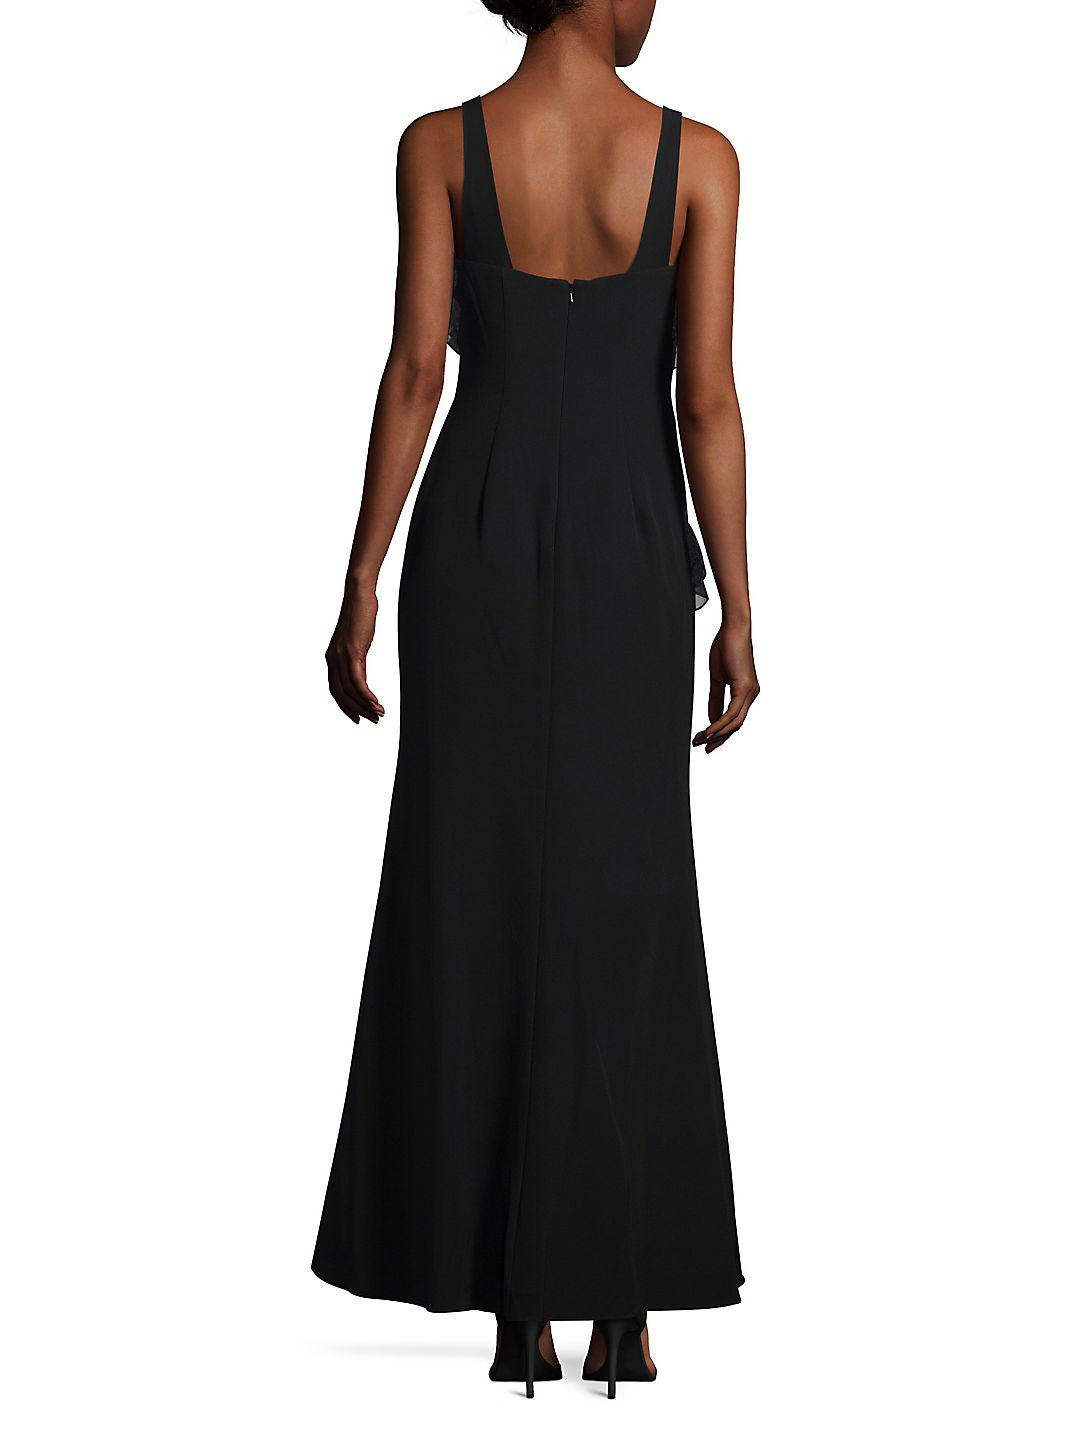 Js collections Sleeveless Flounce Evening Gown in Black | Lyst